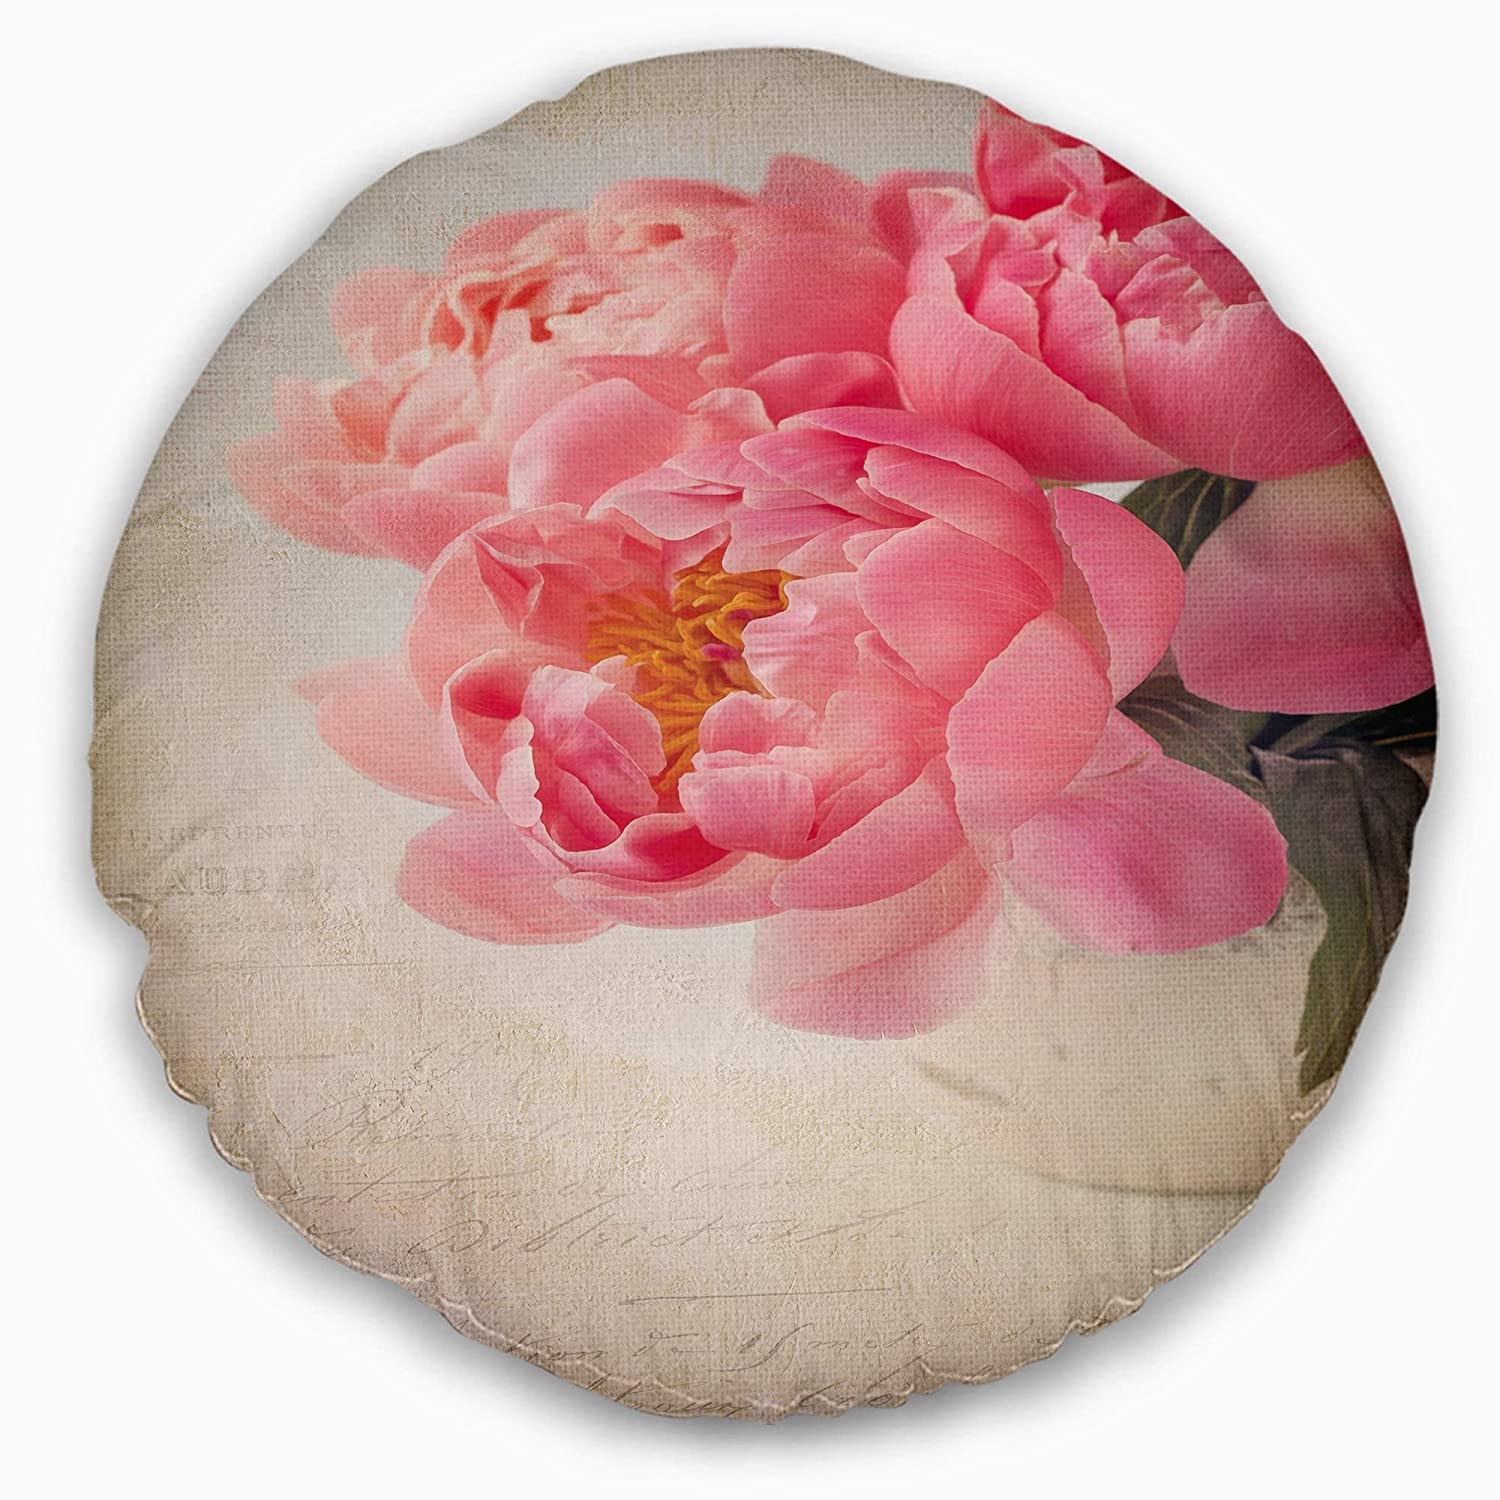 Sofa Throw Pillow 20 Insert Printed On Both Side Designart CU14183-20-20-C Bunch of Colorful Peony Flowers Floral Round Cushion Cover for Living Room